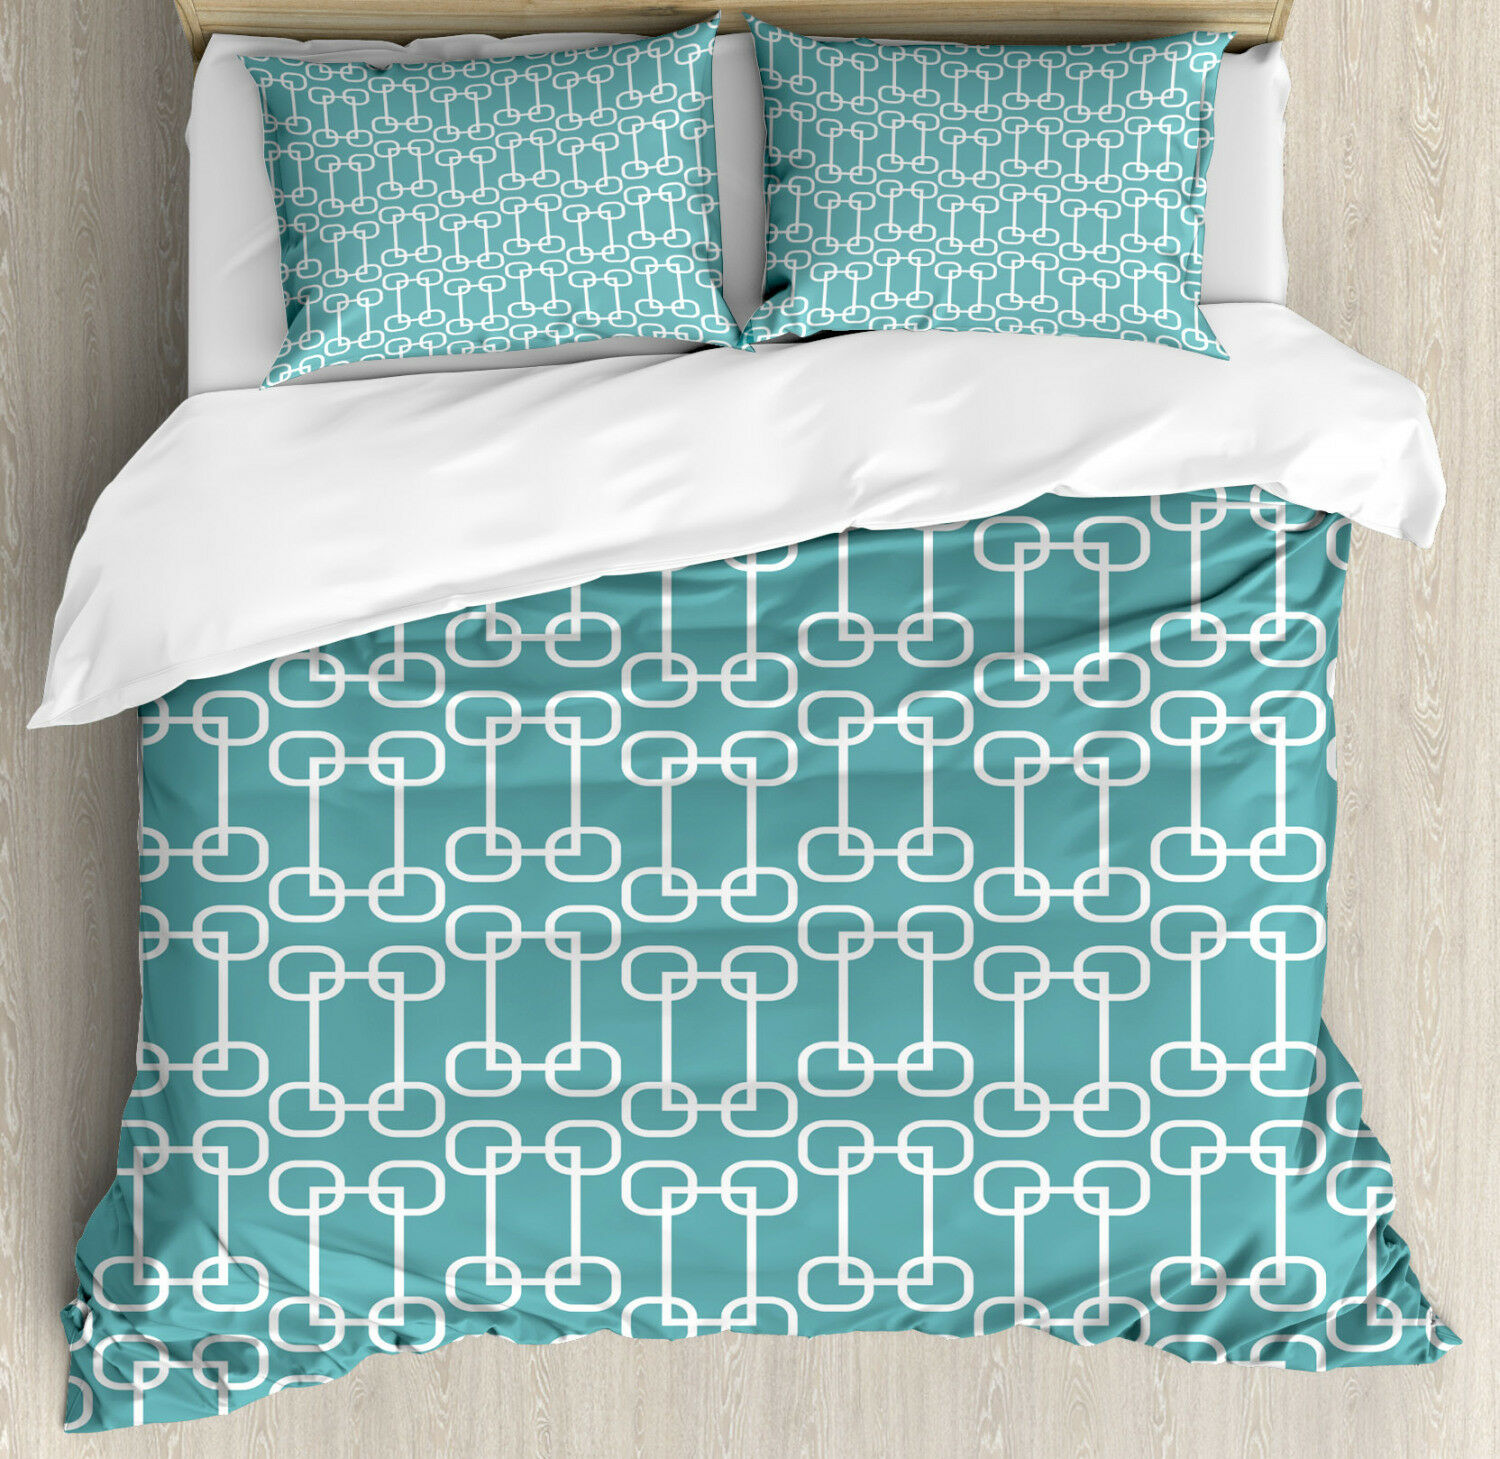 Turquoise Duvet Cover Set with Pillow Shams Retro Squared Rounds Print